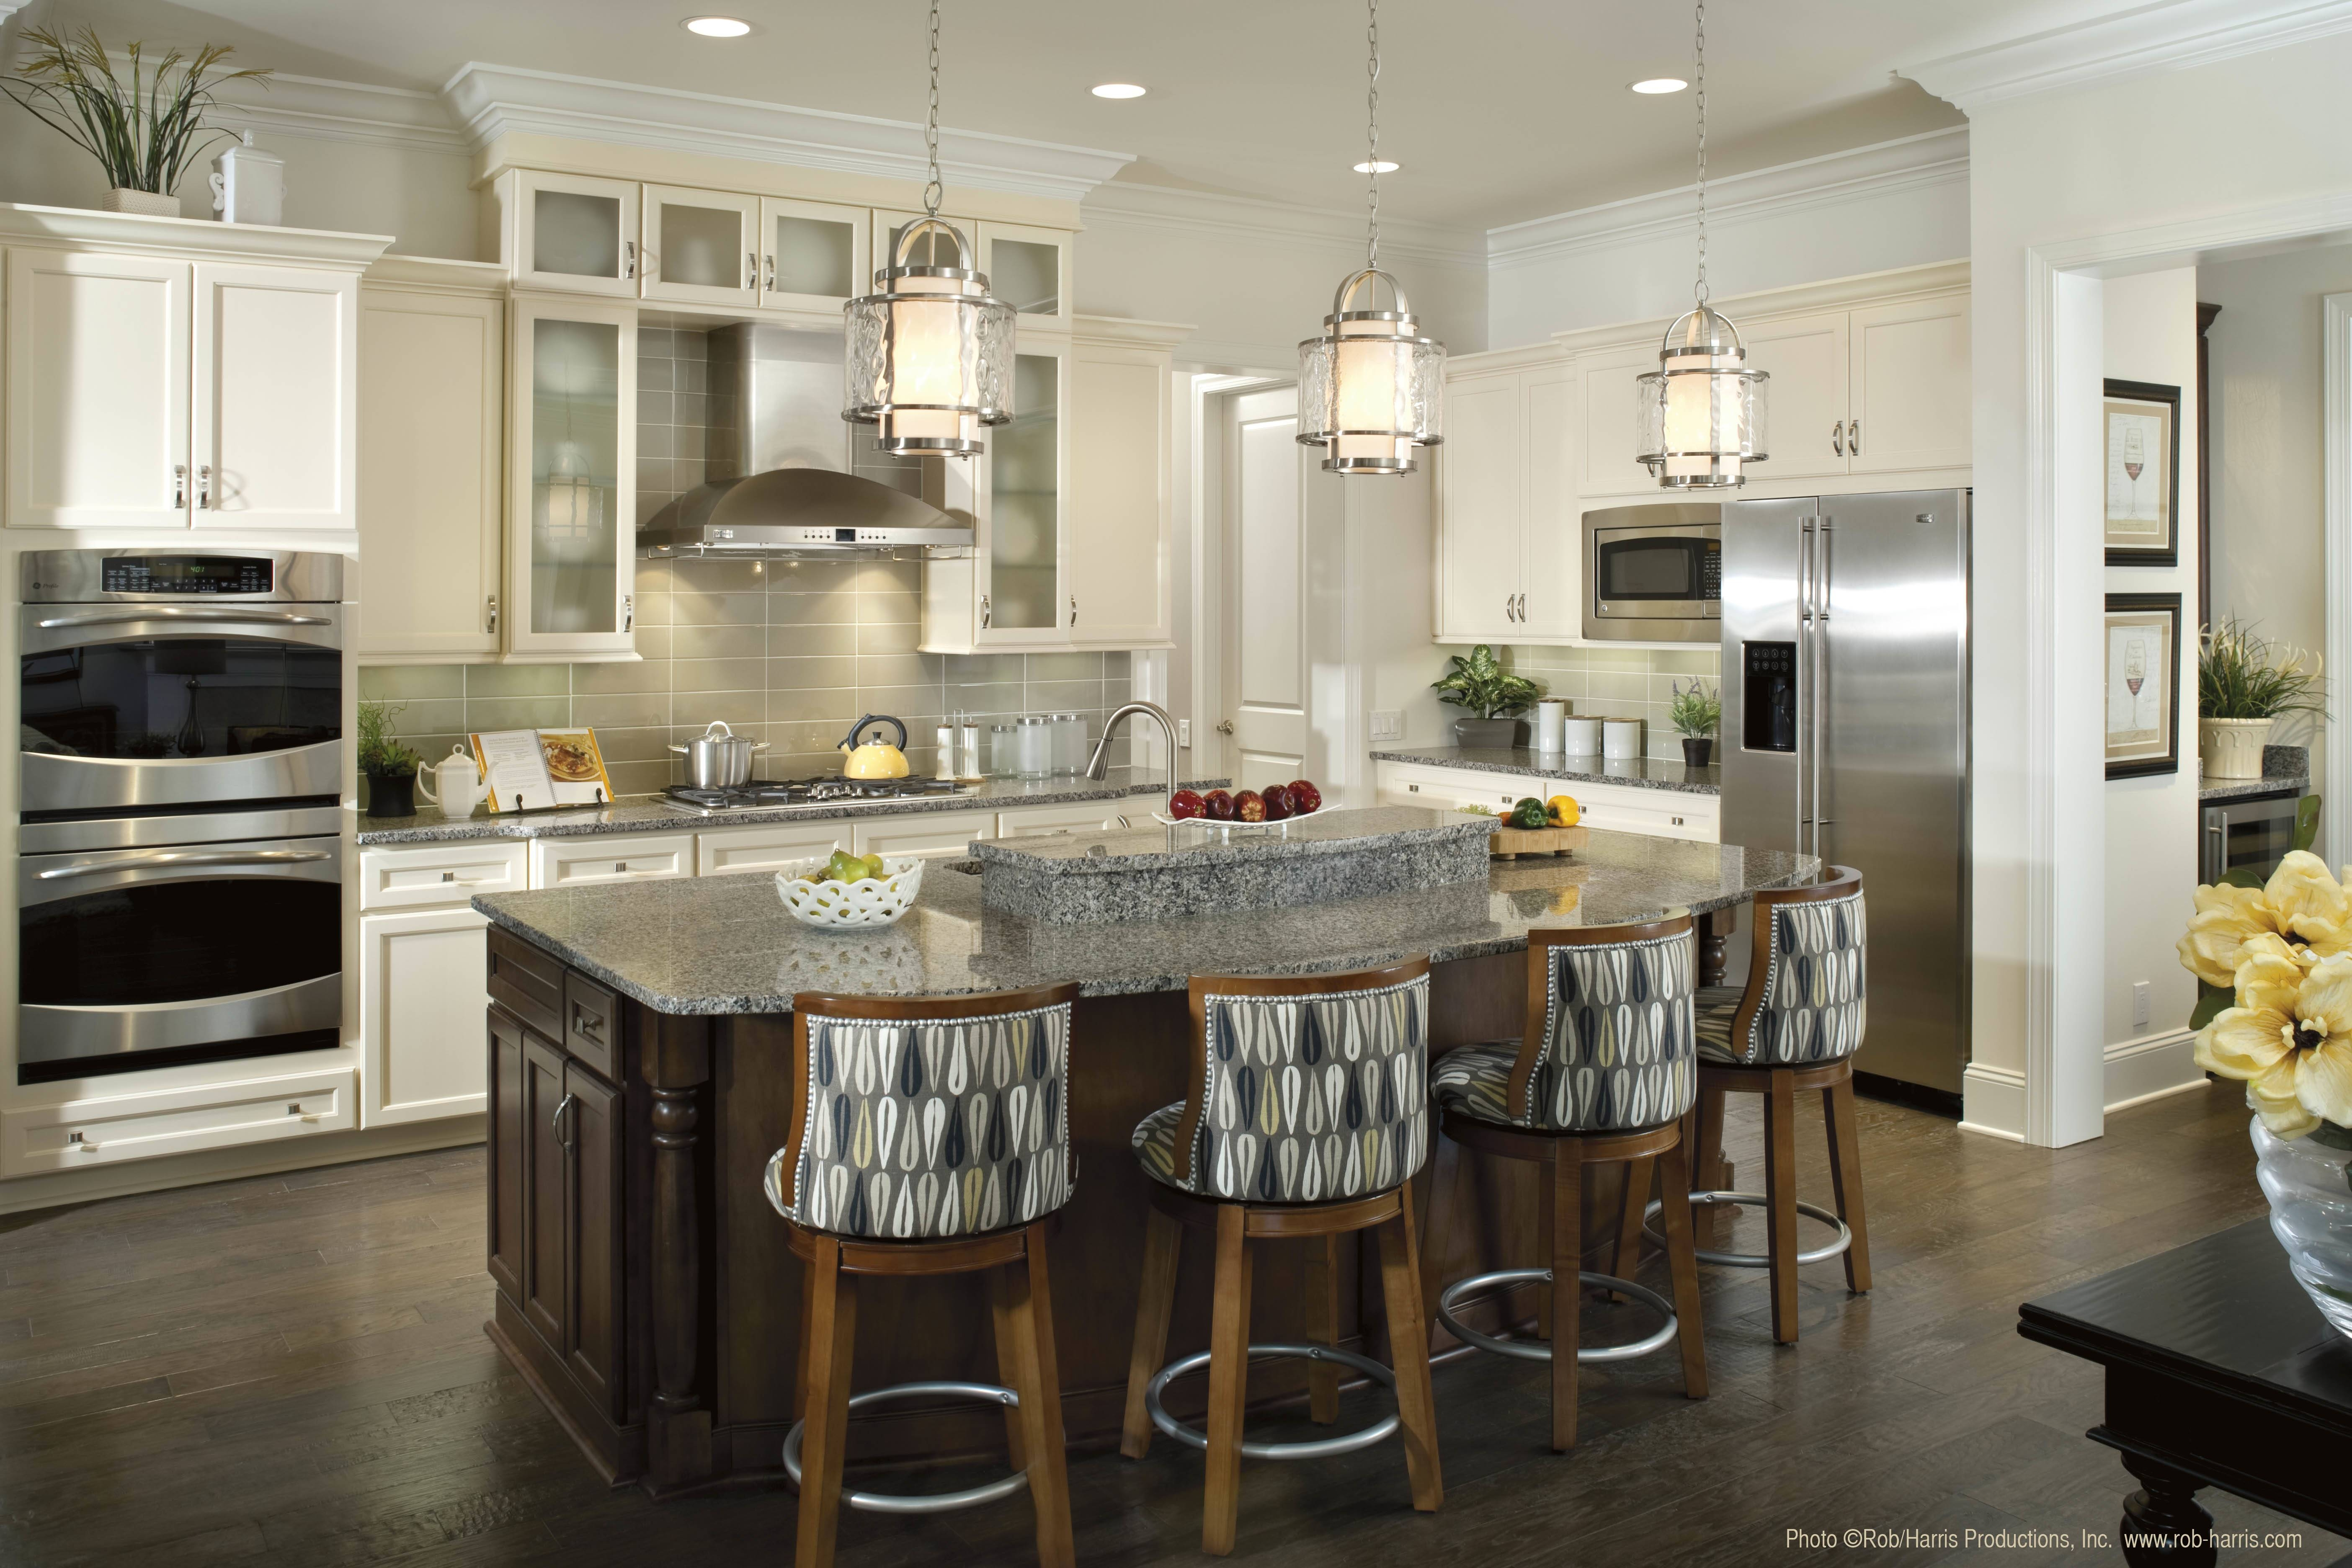 Pendant Lighting Over Kitchen Island Trends Including Hanging pertaining to Ikea Kitchen Pendant Lights (Image 14 of 15)